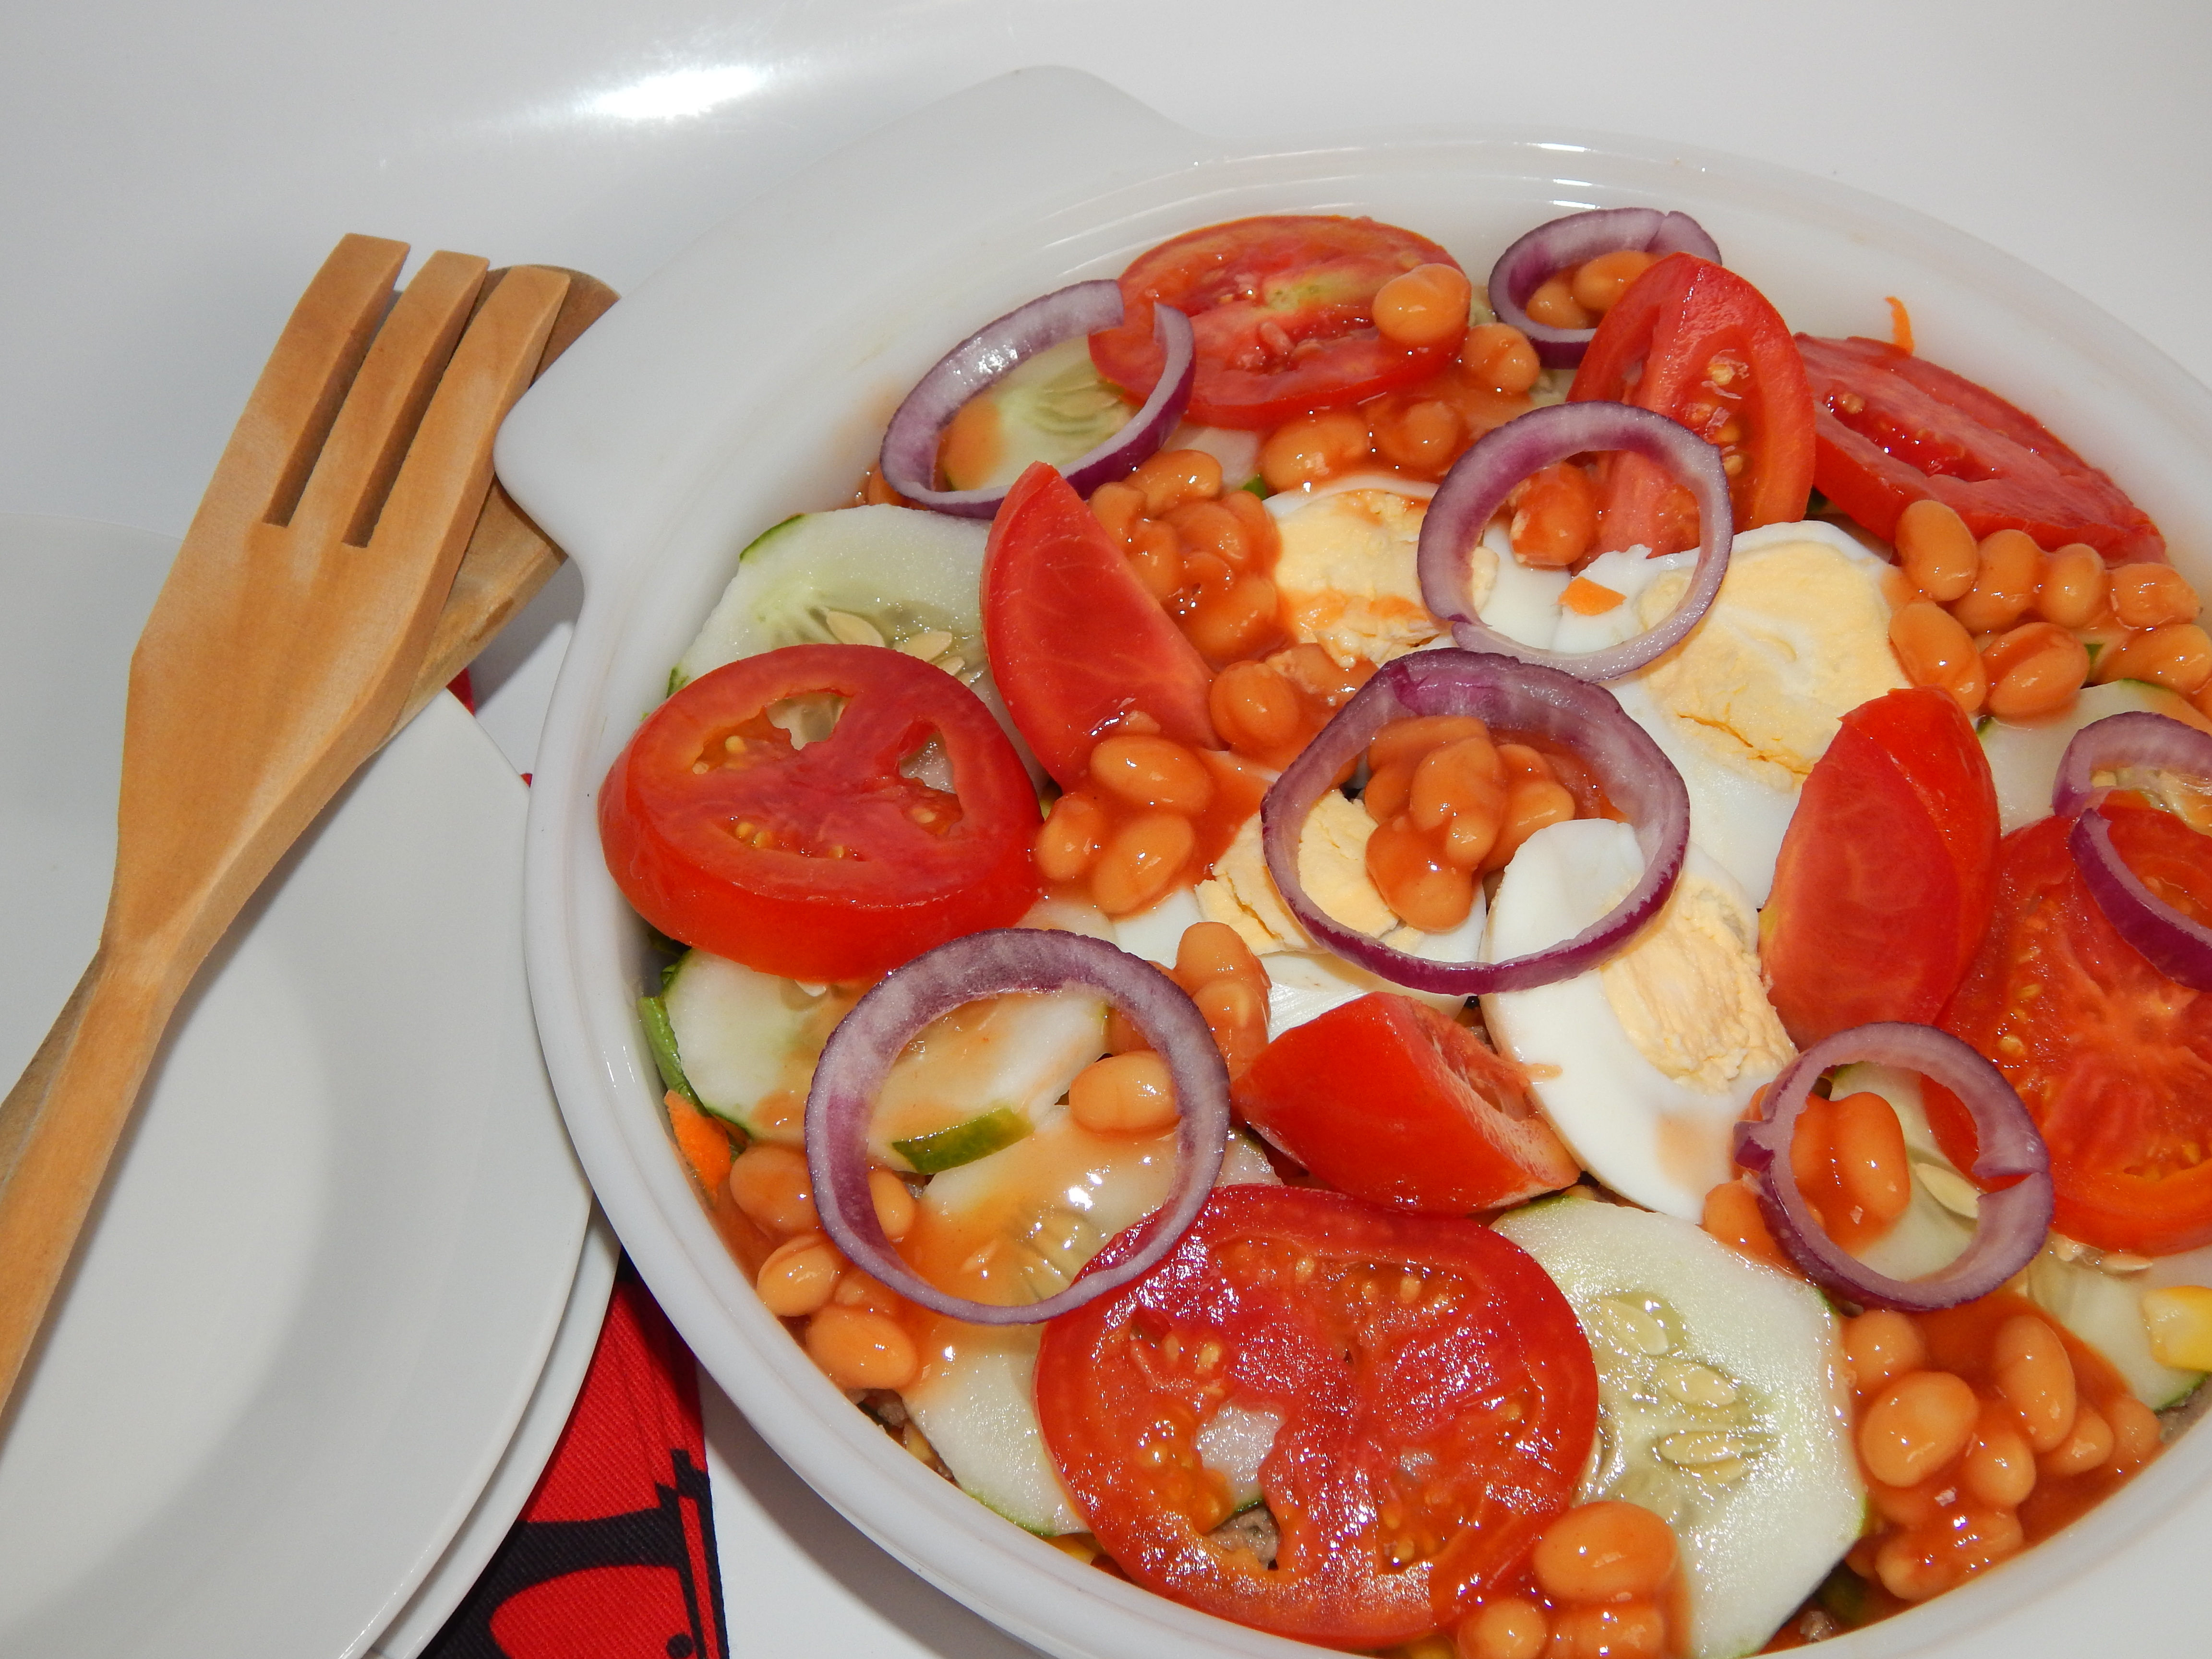 Finish off with cucumbers,  baked beans,  eggs, tomatoes and onions if using